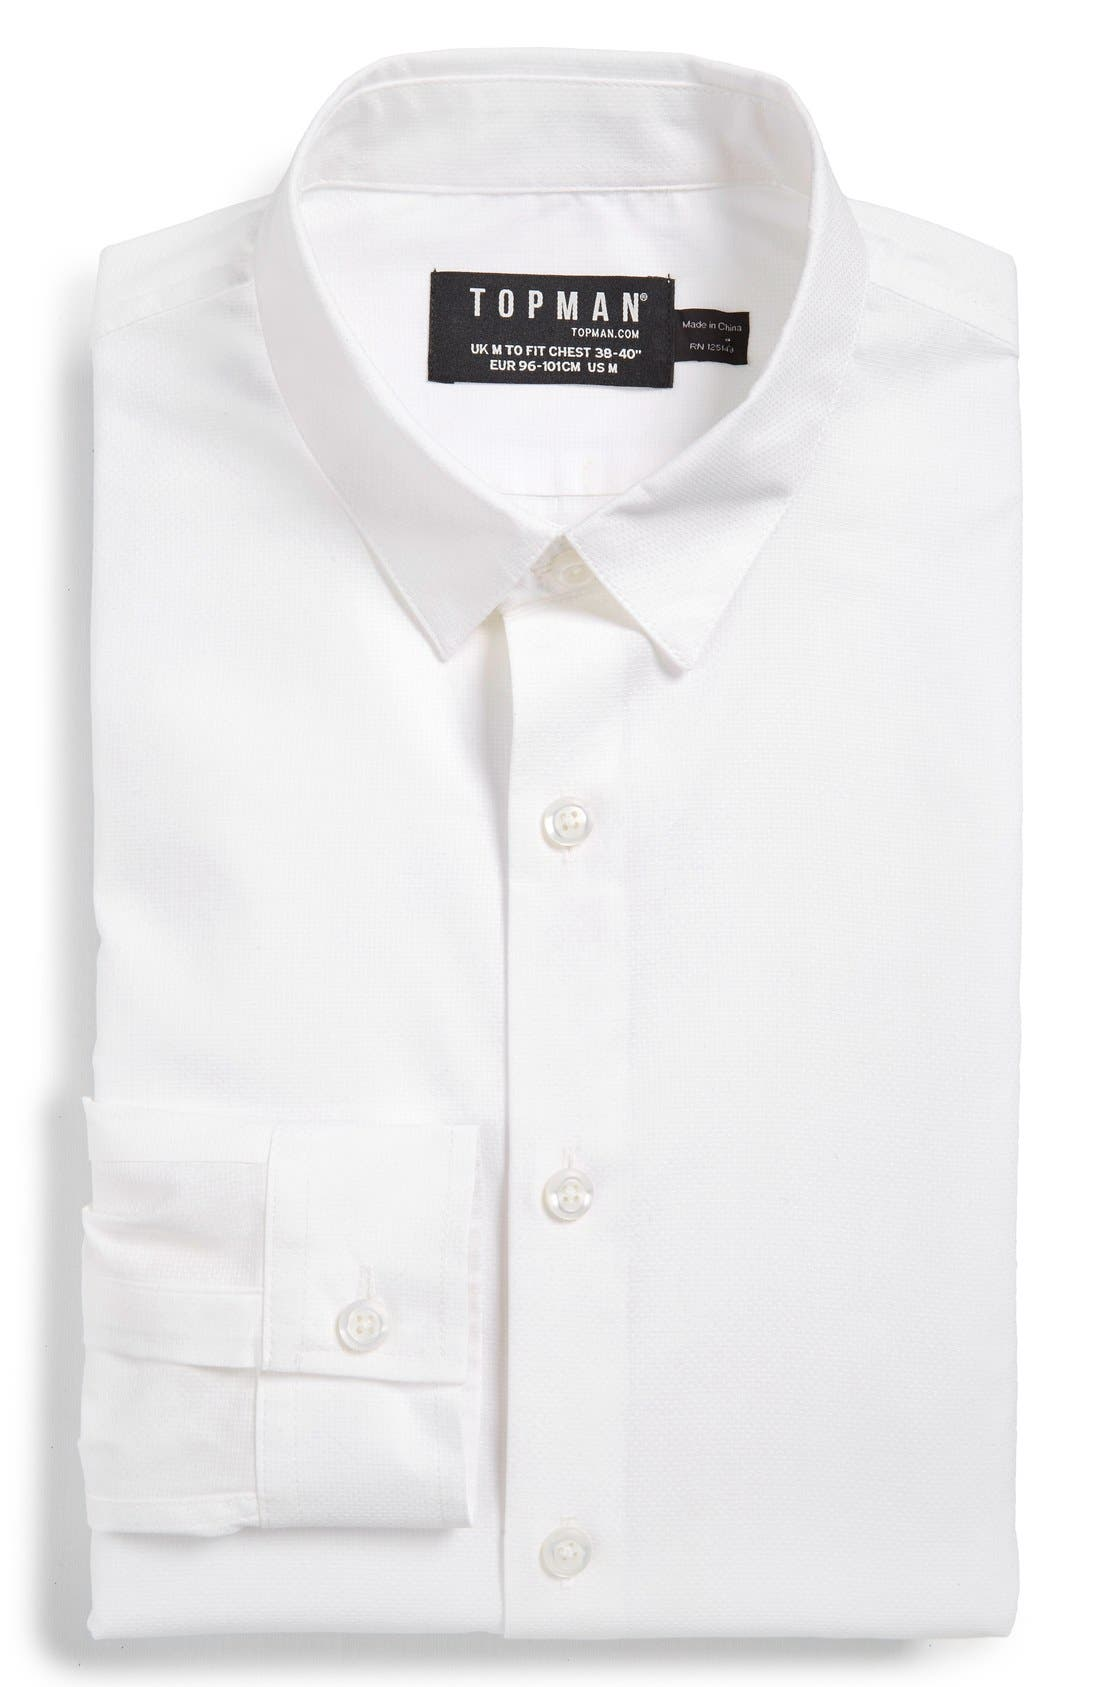 Main Image - Topman Slim Fit Textured Cotton Dress Shirt